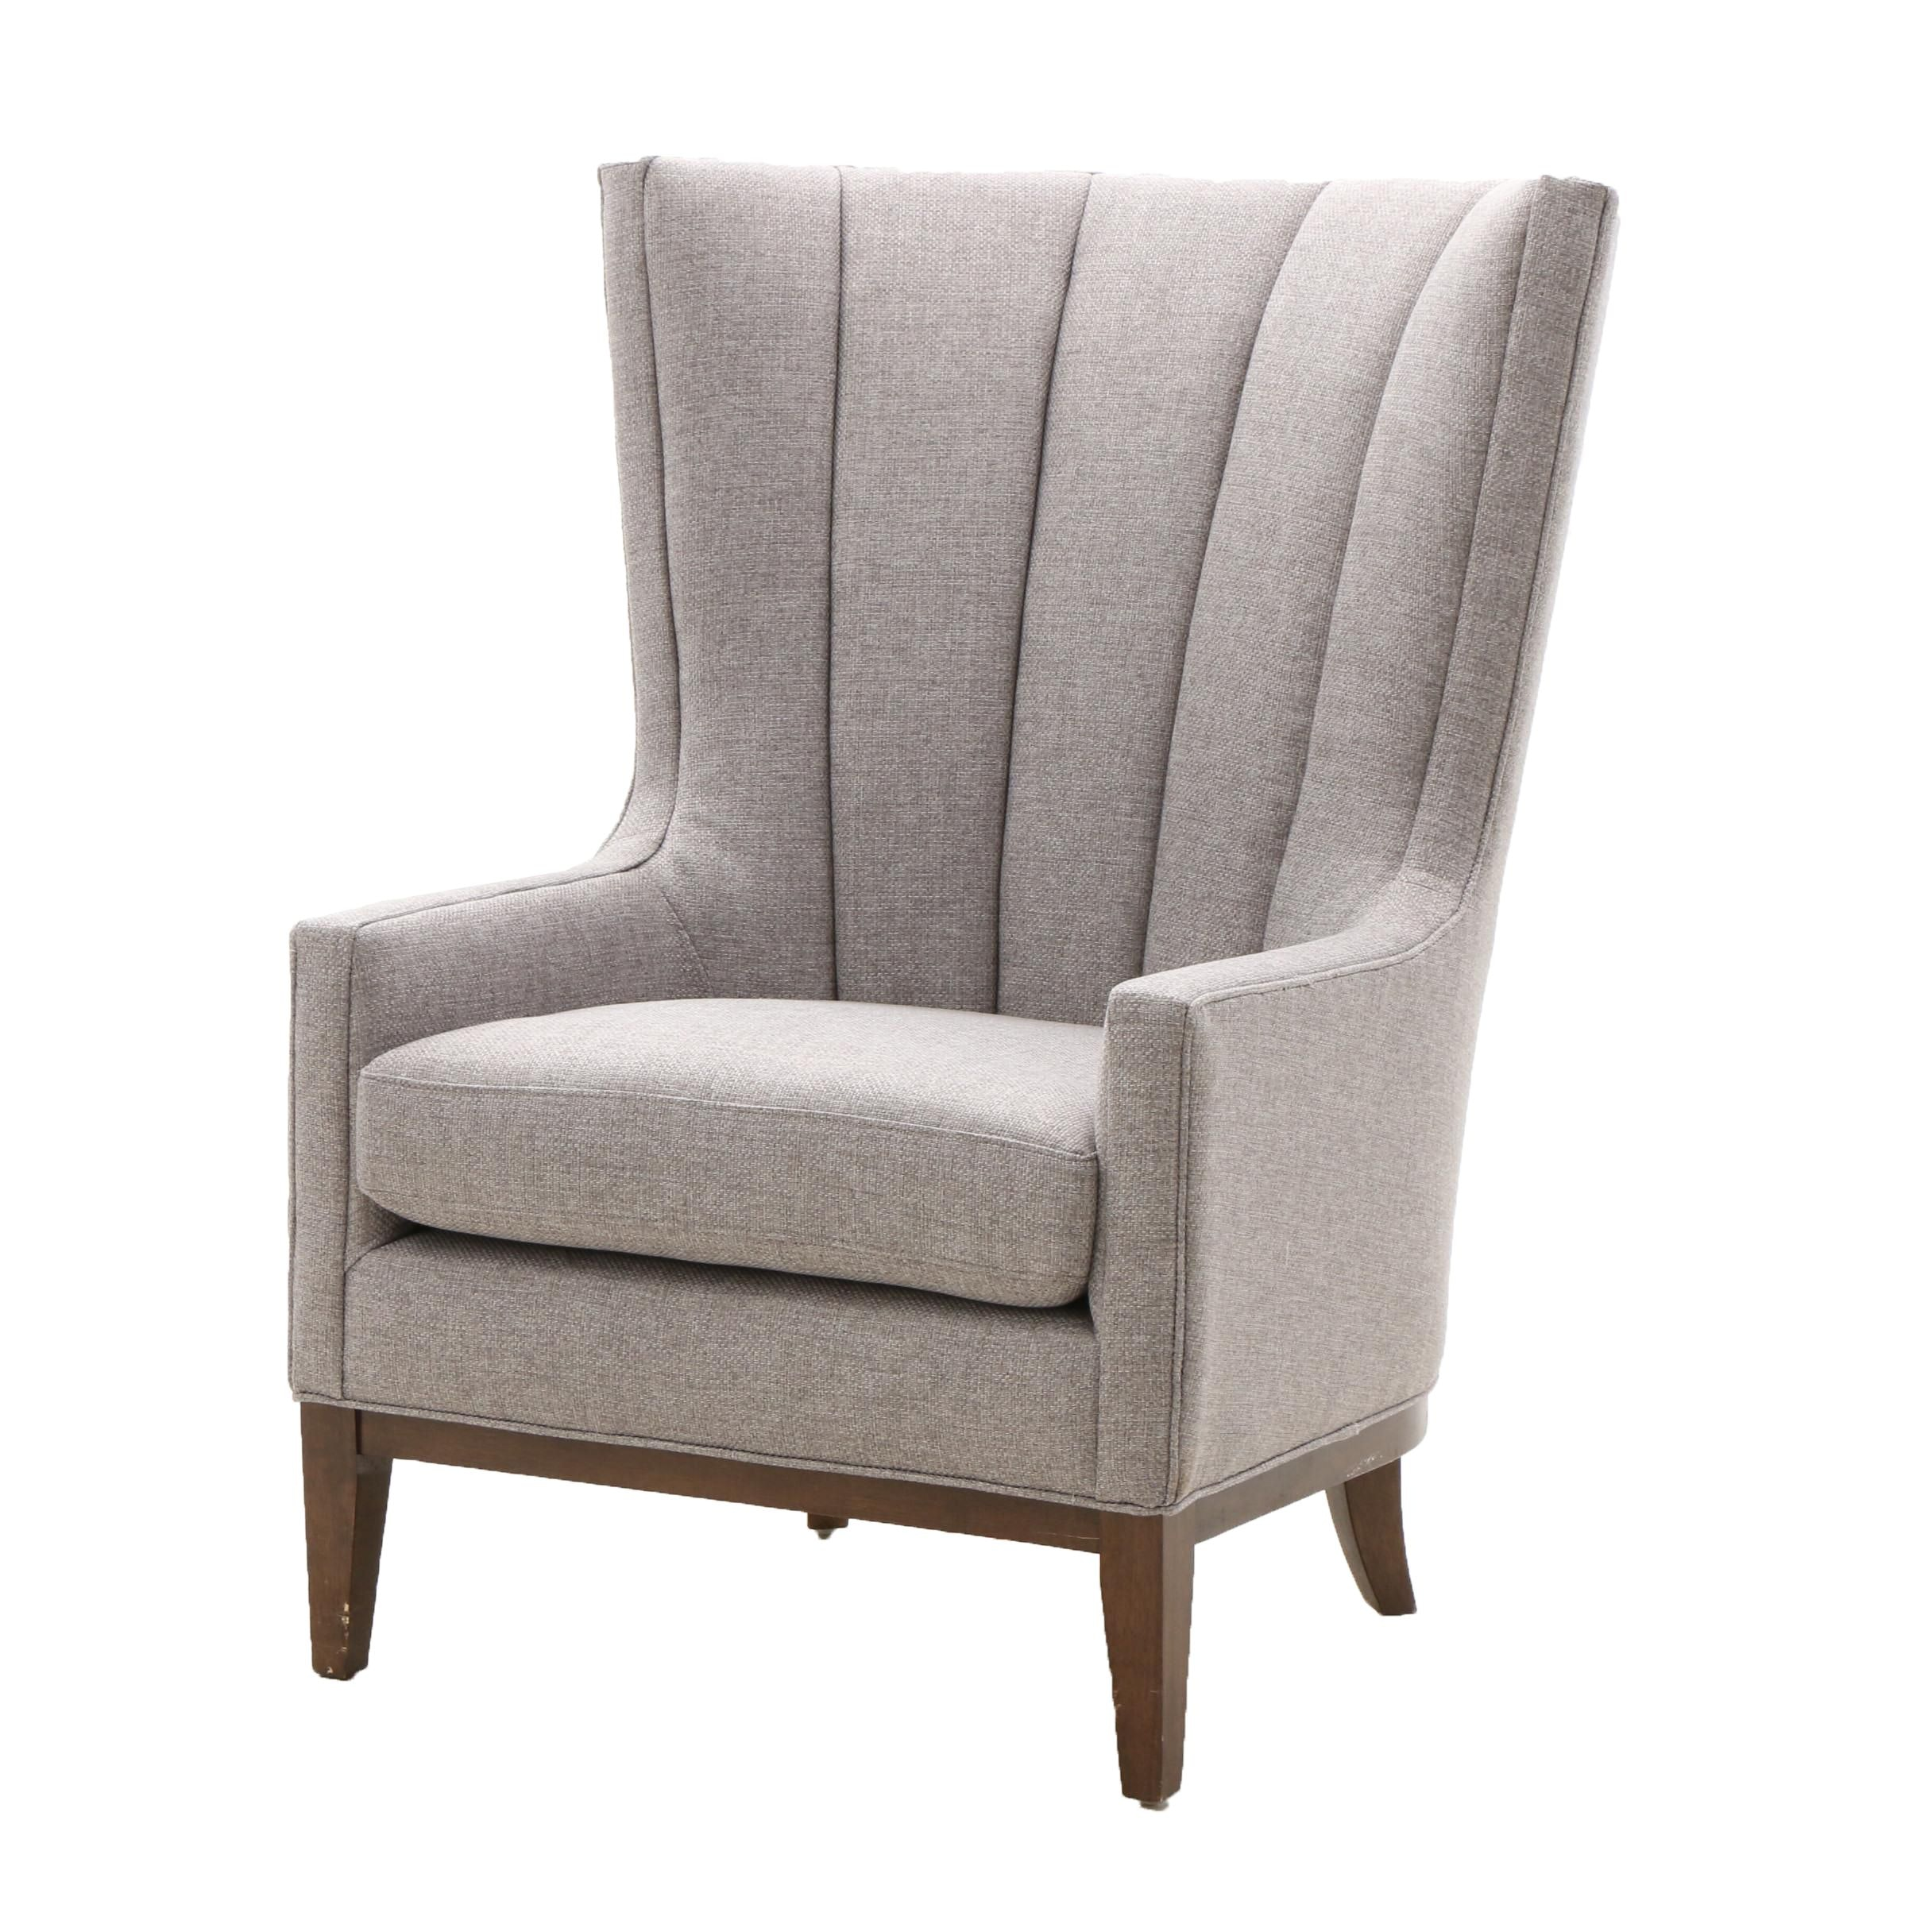 Contemporary Upholstered High Back Arm Chair in Grey